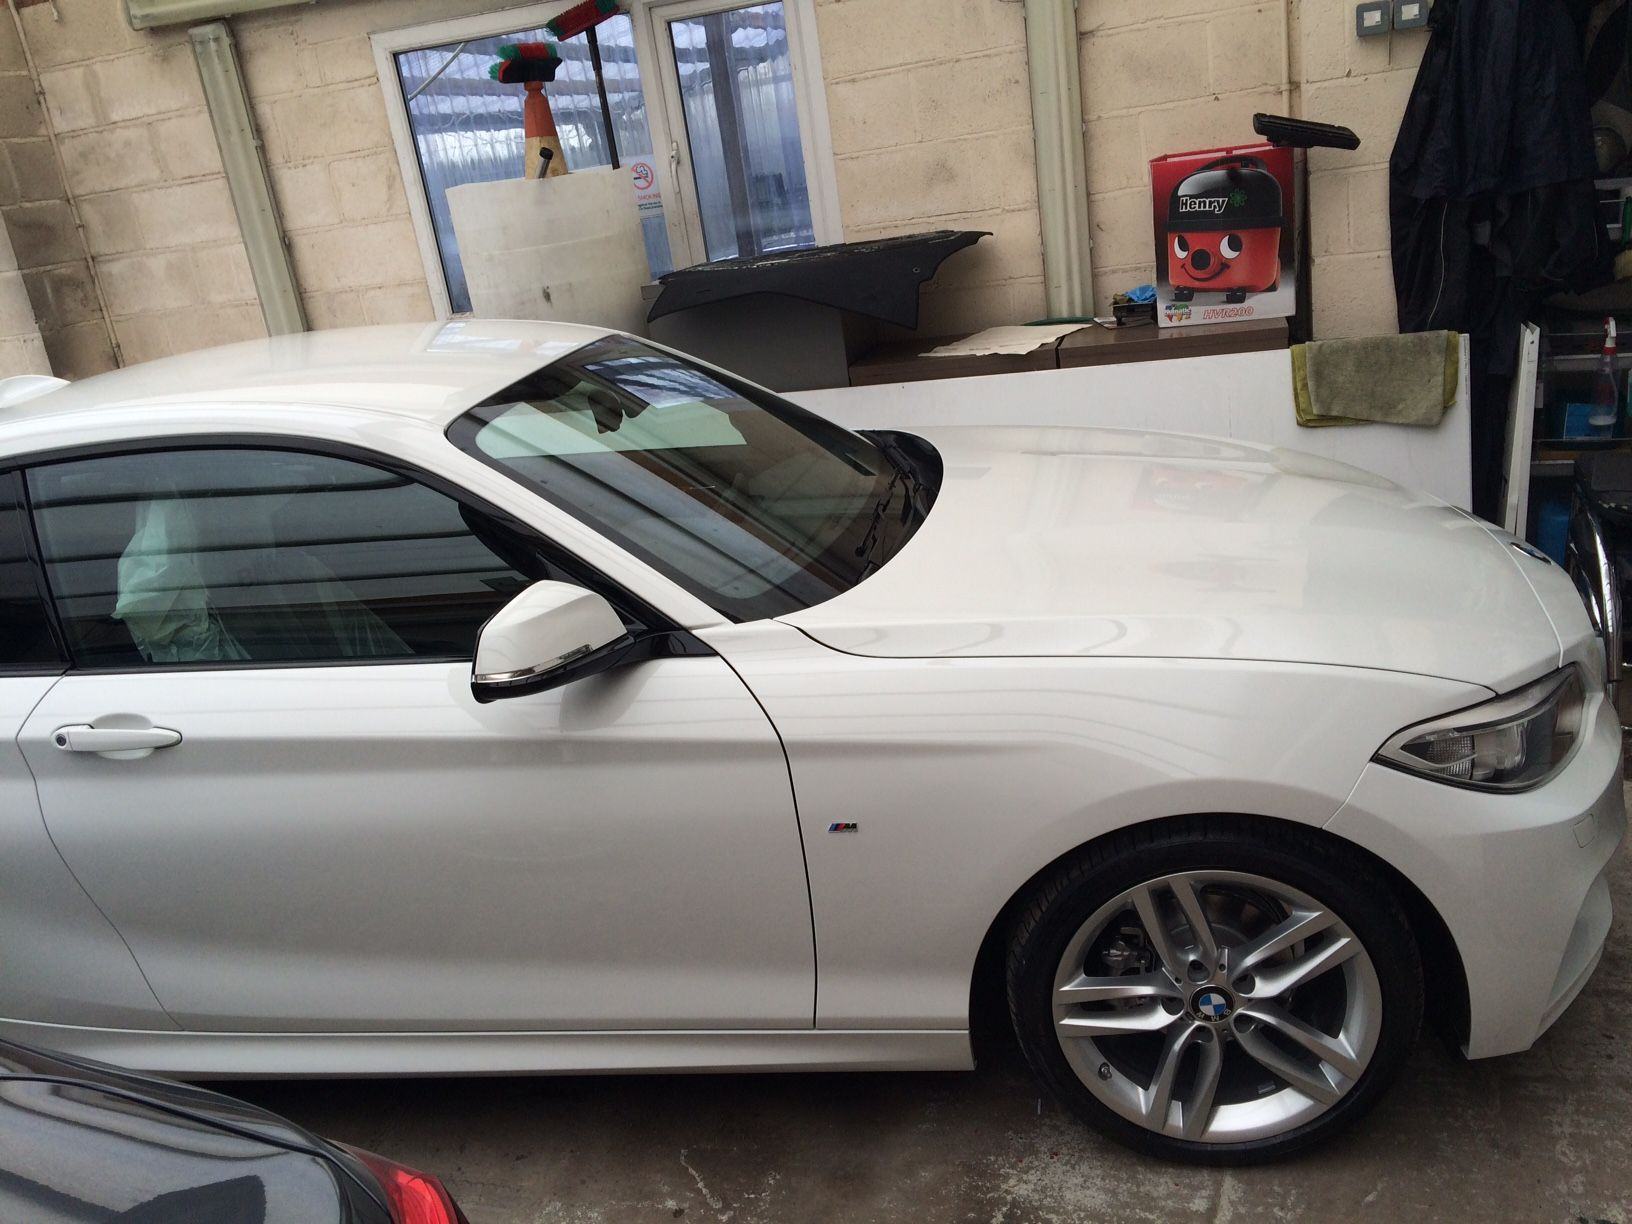 The BMW Series Coupe Carleasing Deal One Of The Many Cars And - Bmw 2 series coupe lease